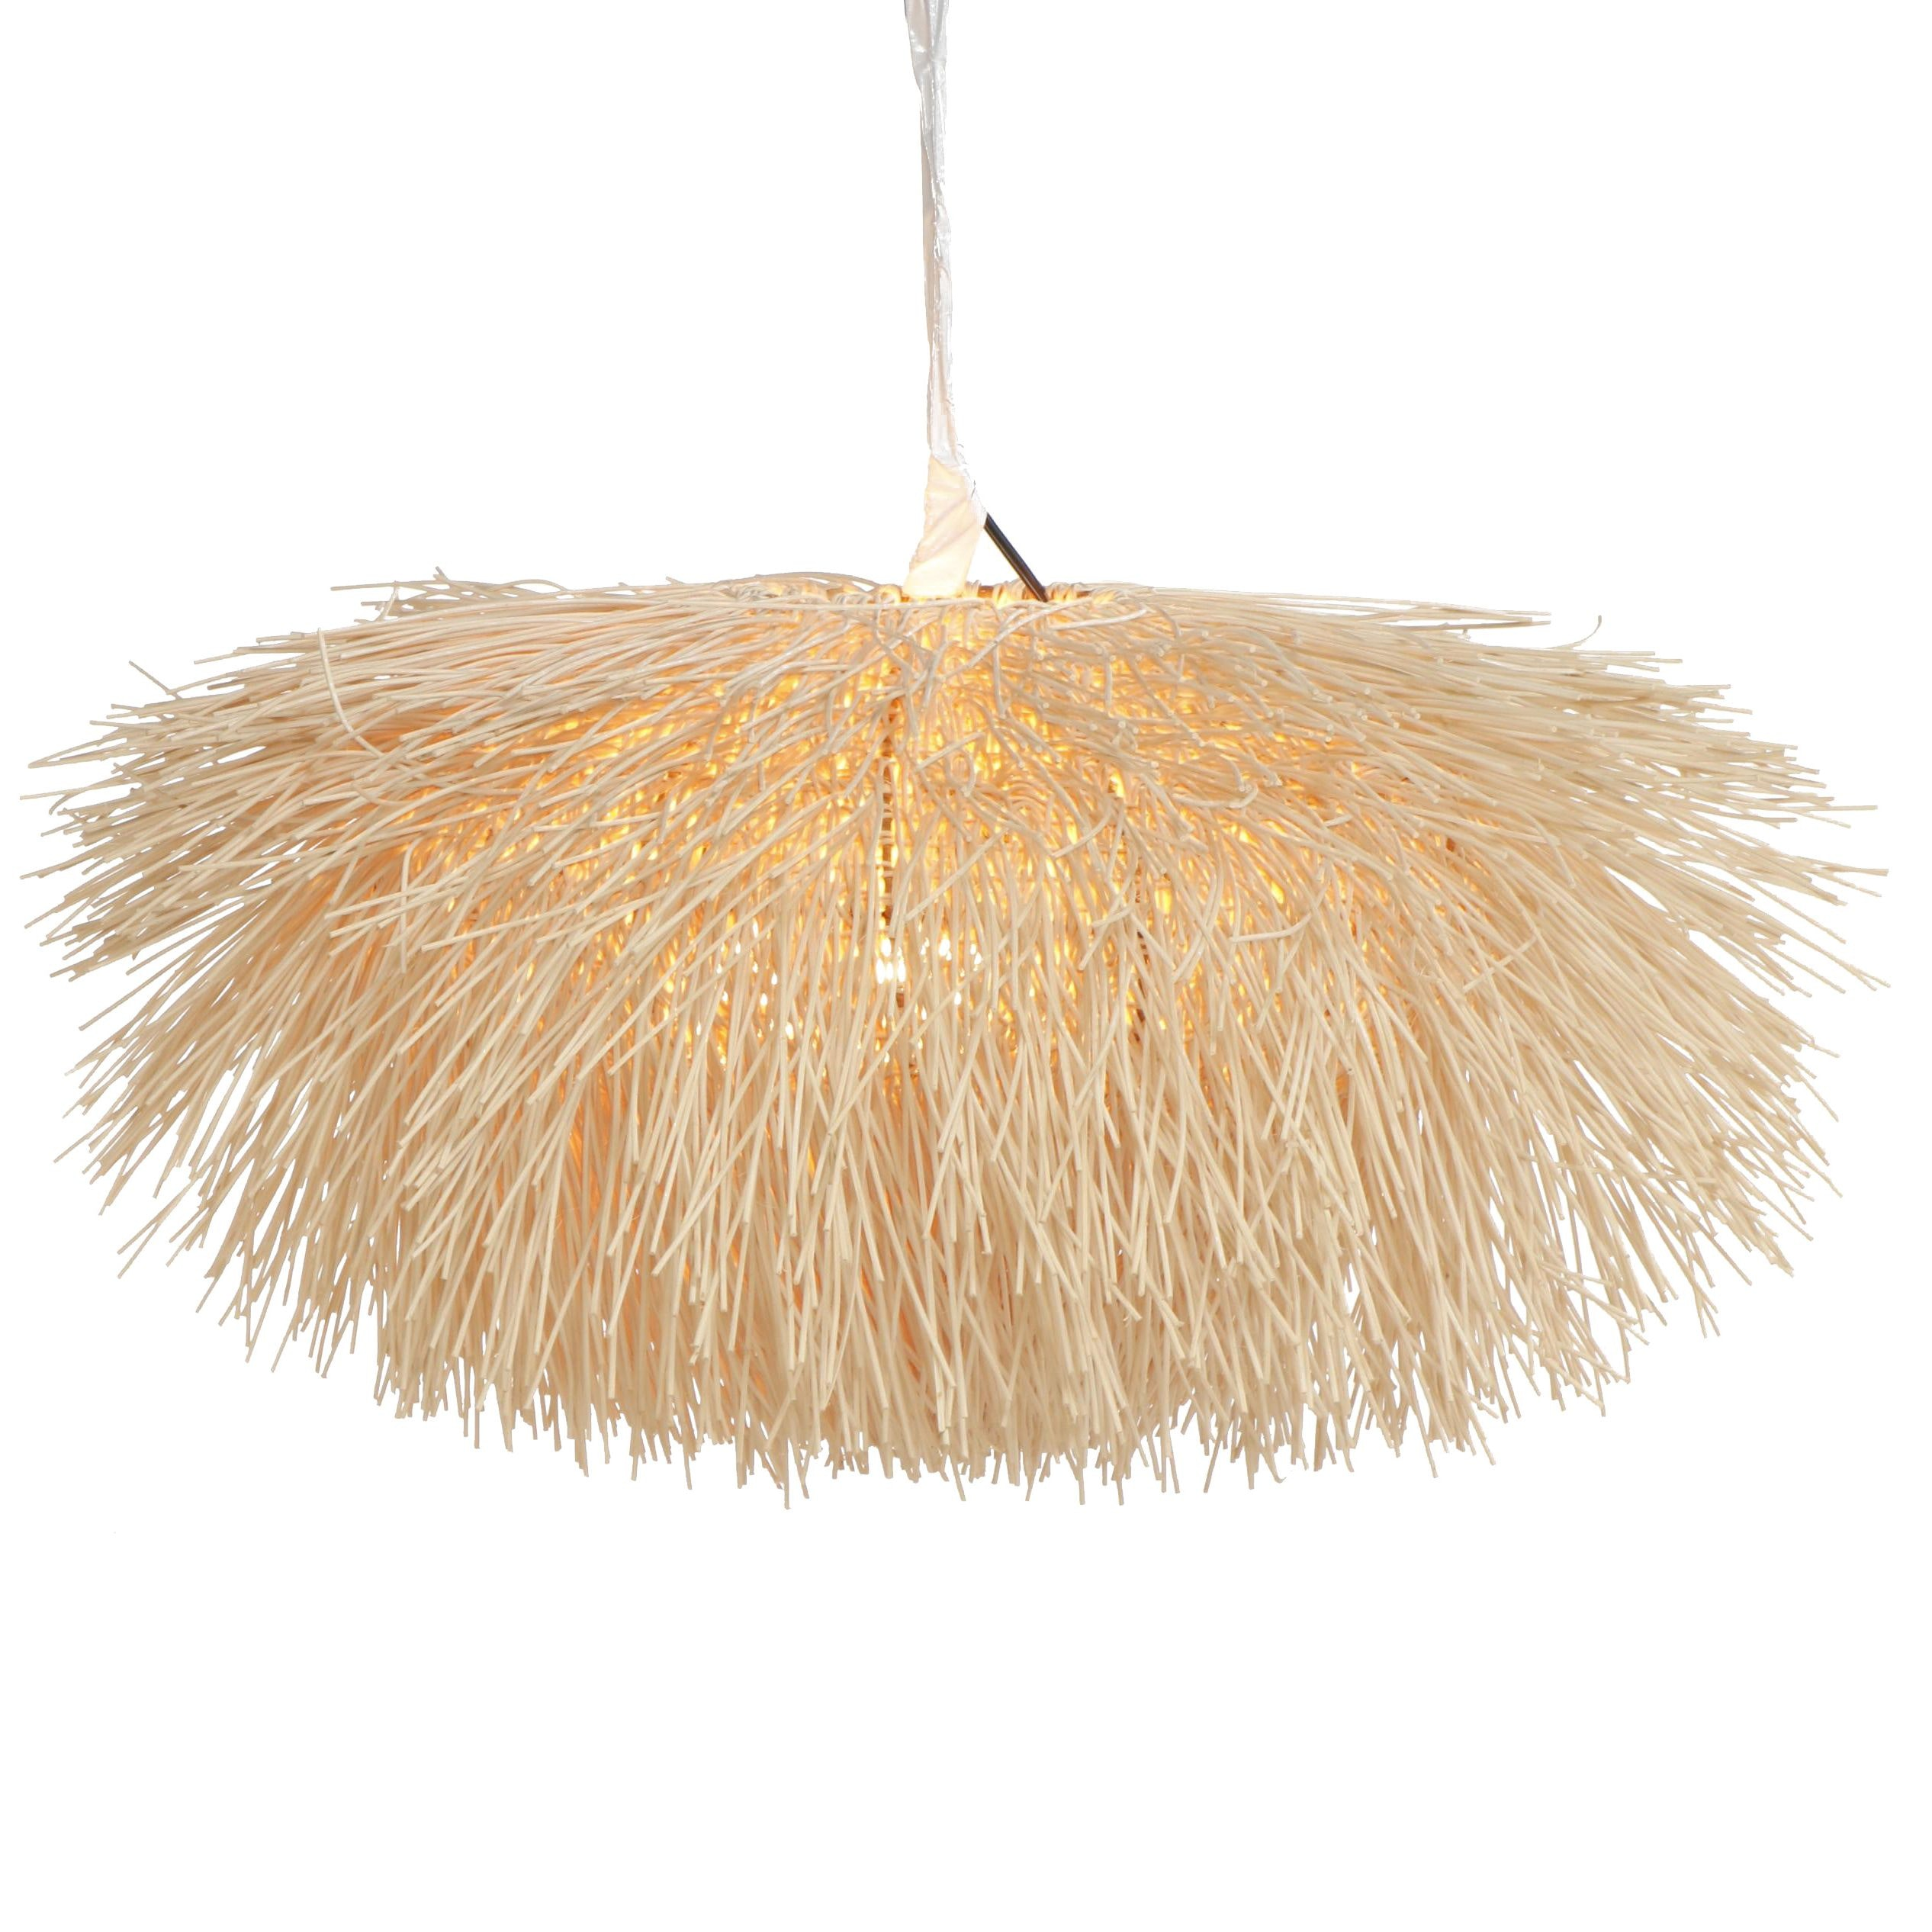 Woven Wood Sea Urchin Style Light Fixture Attributed to Coup Studio